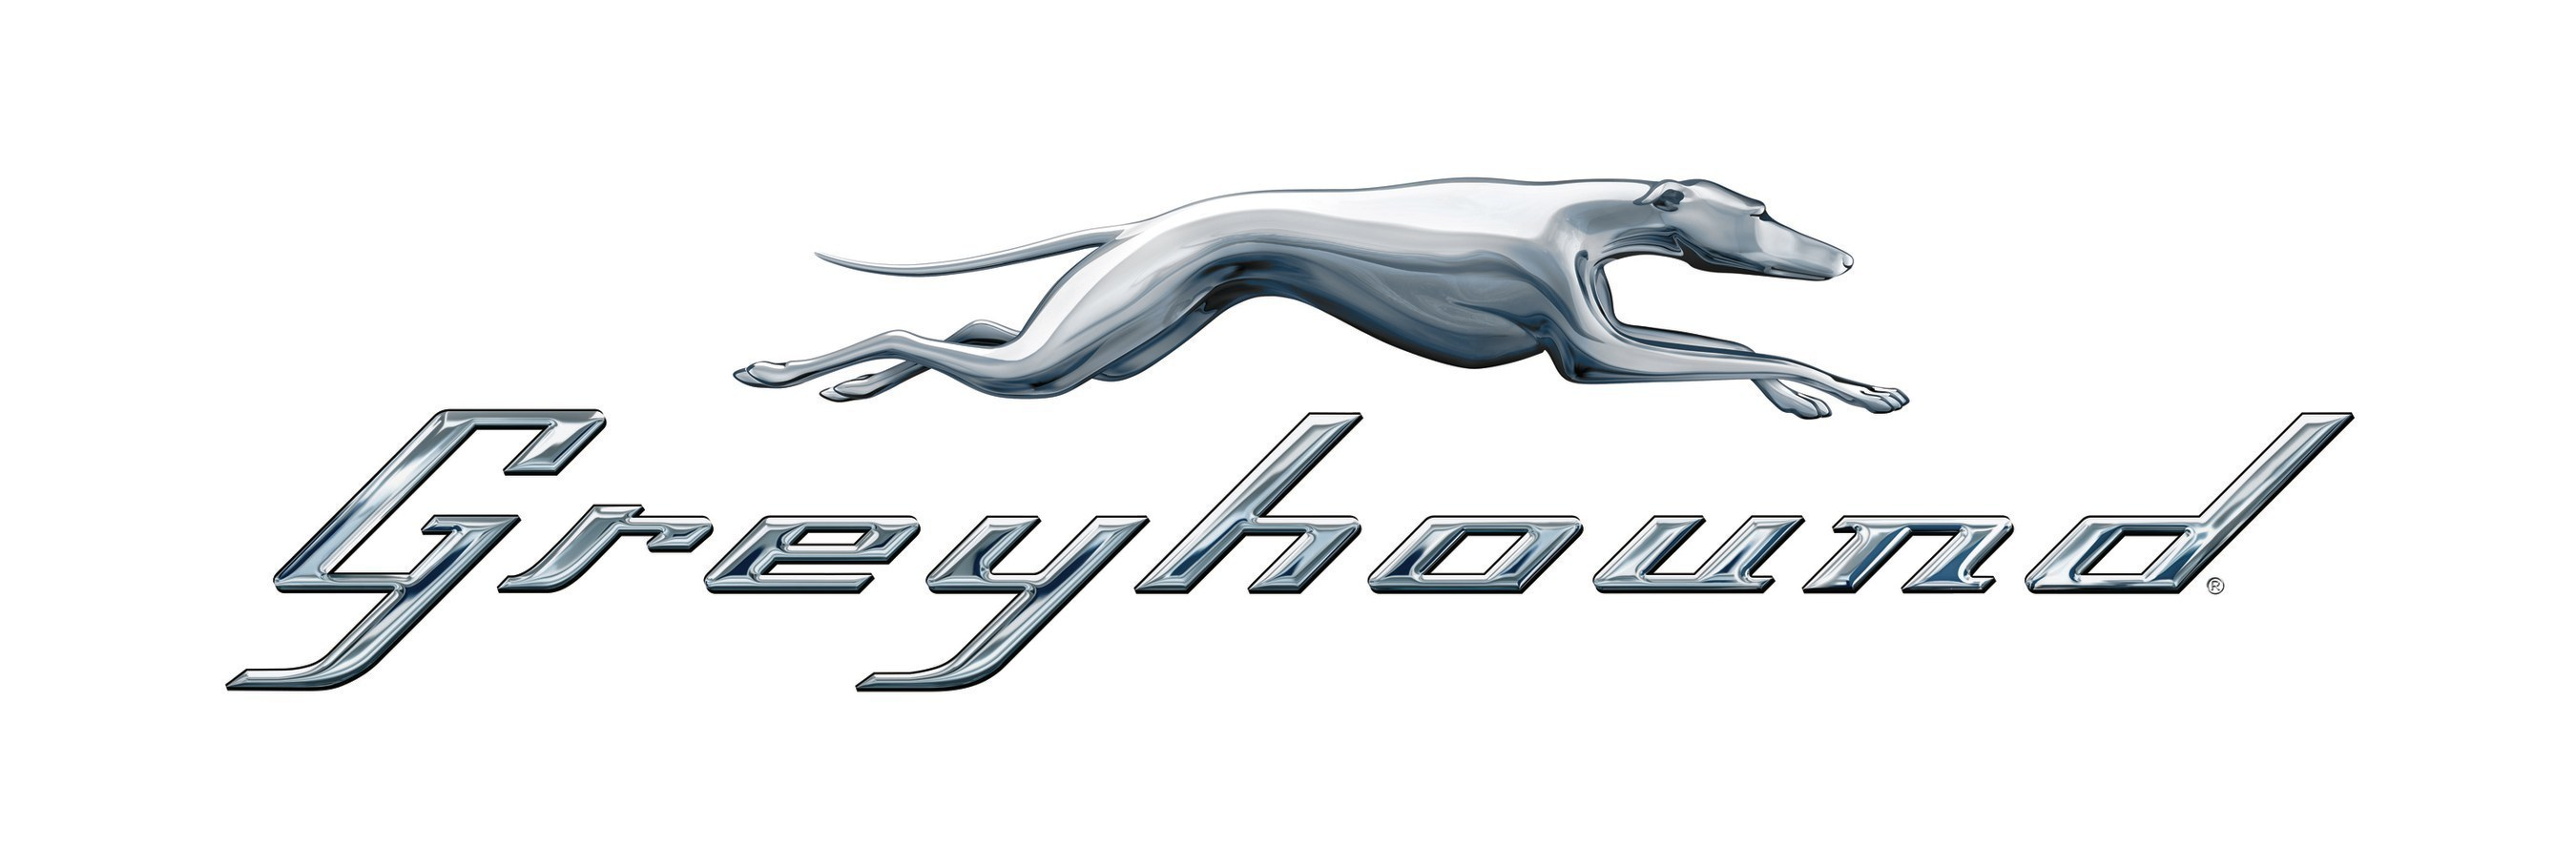 Greyhound, the largest intercity bus company in North America, today announced an all-new Greyhound.com that ...